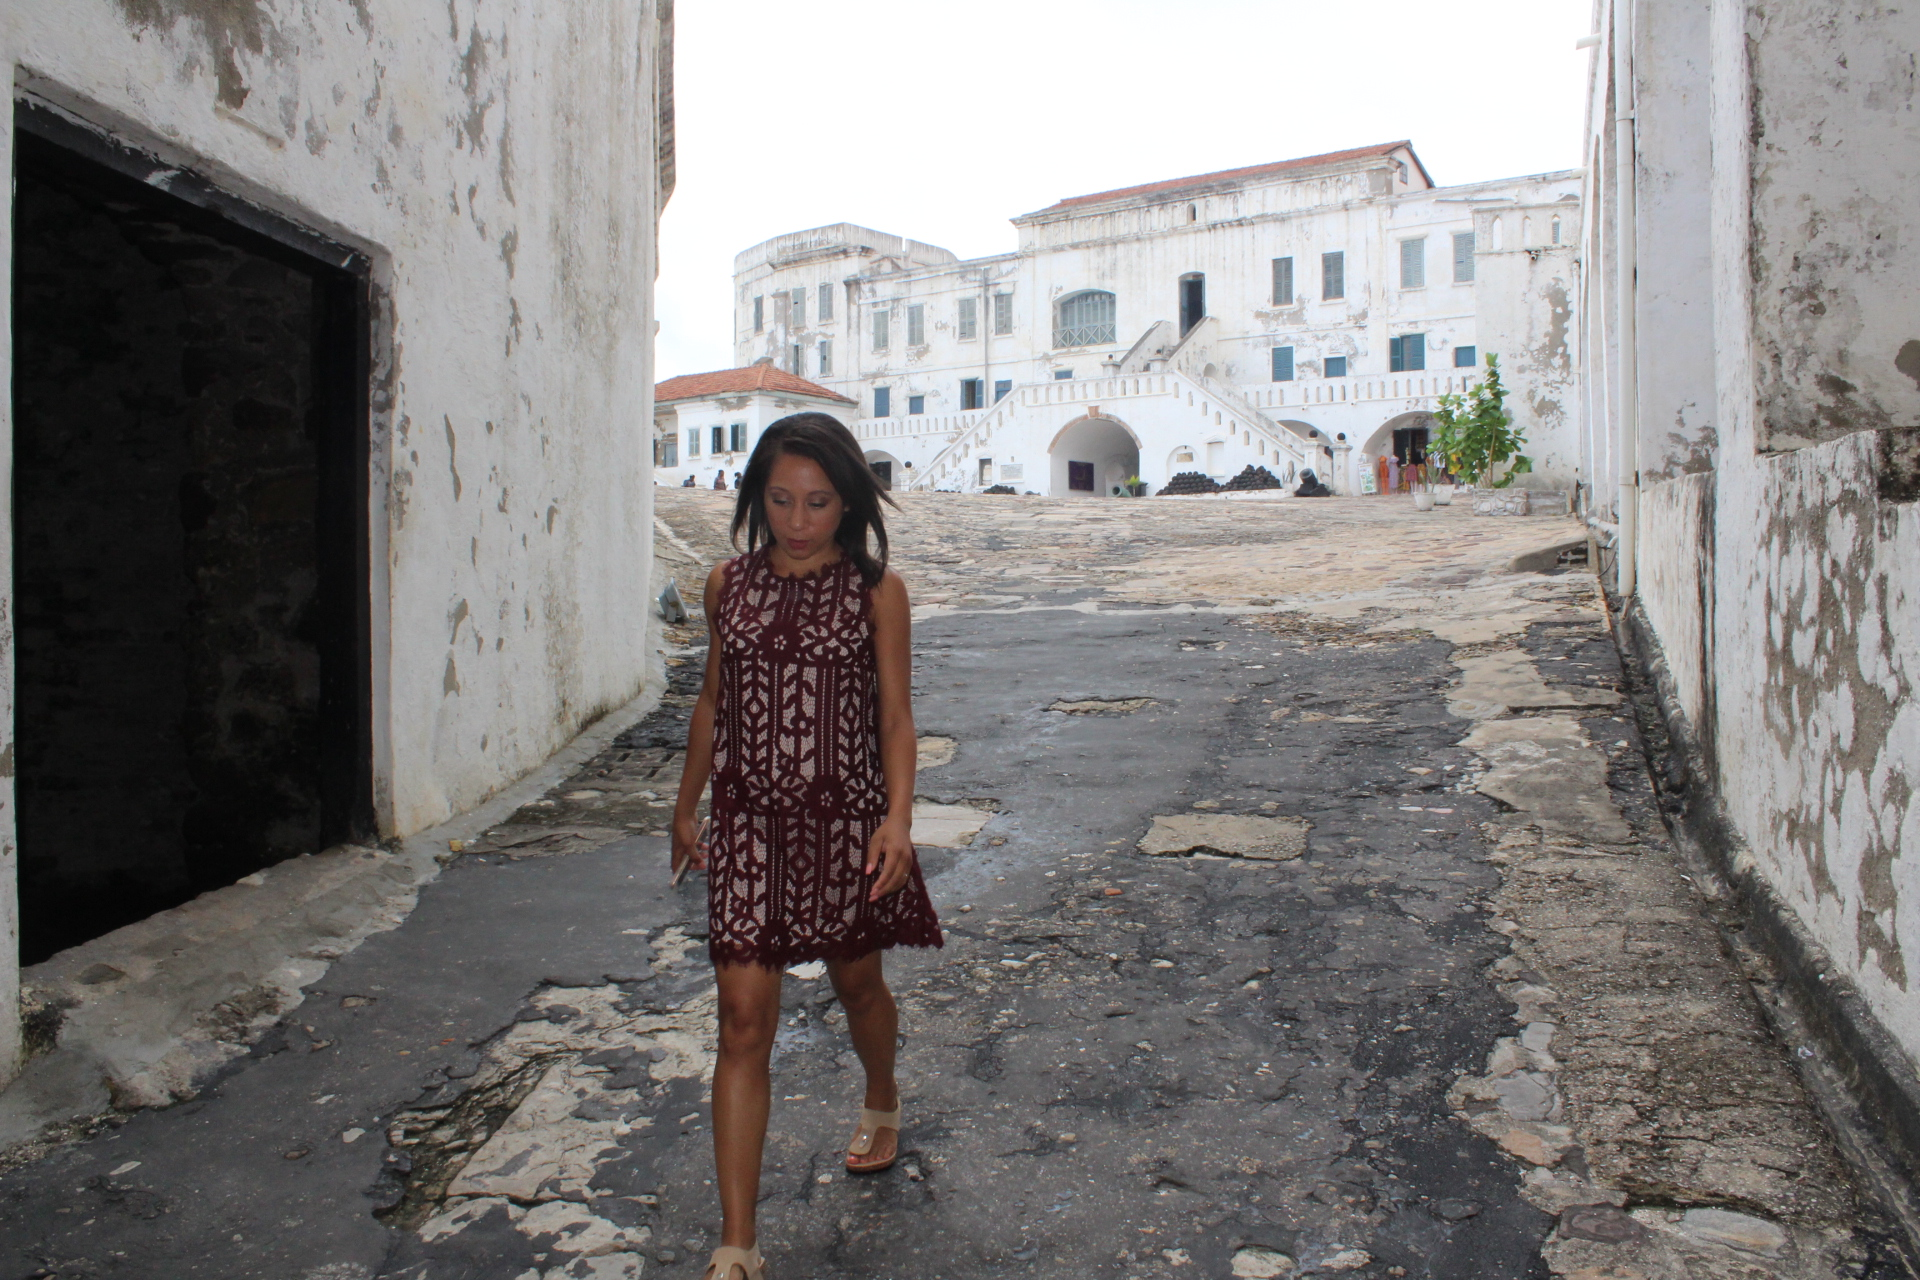 Walking through the Cape Coast slave castle, processing the horrible stories I'd just heard.